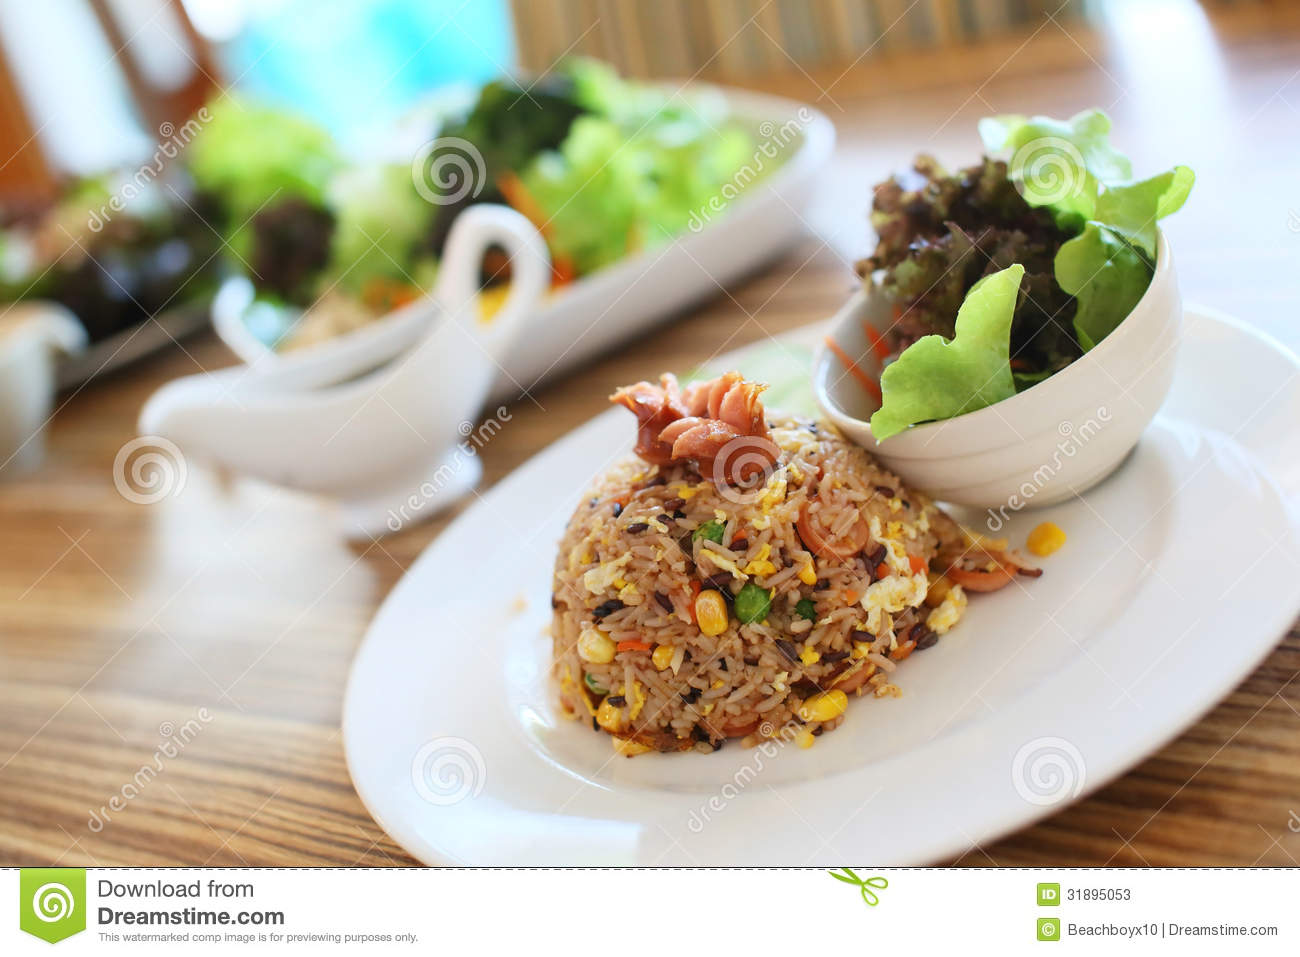 Stock Photos: Sausage fried rice and Salad